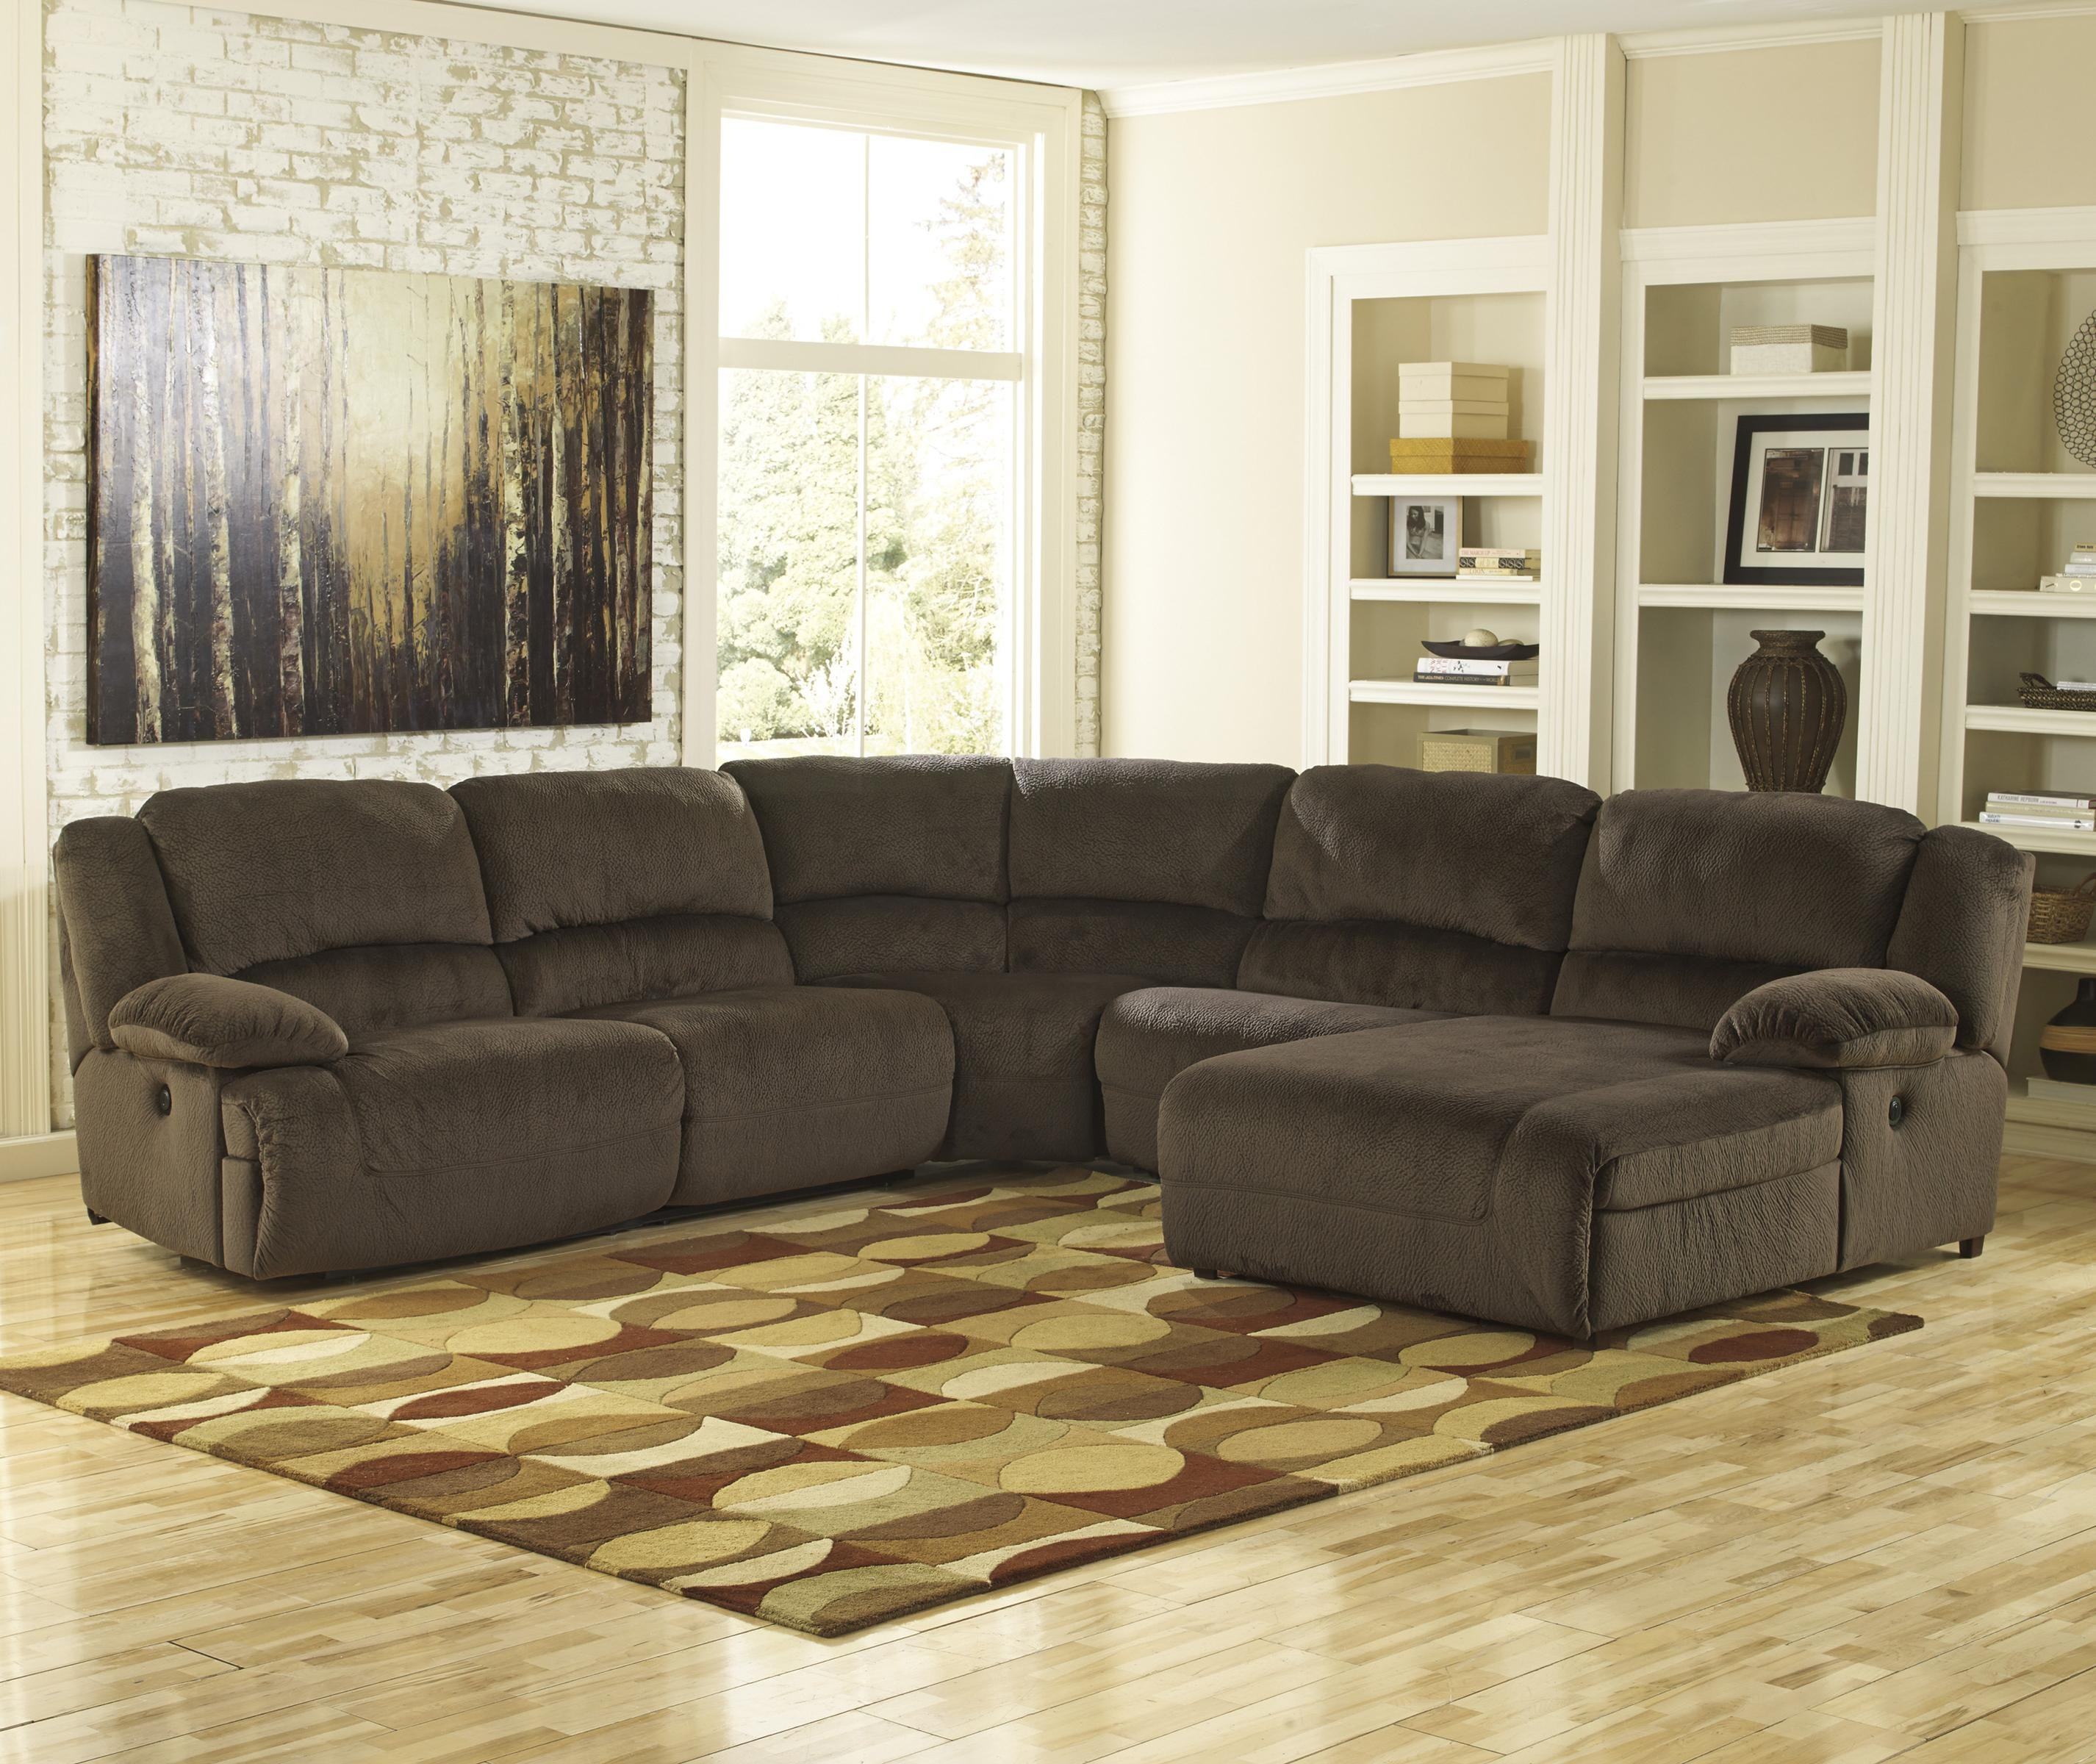 Signature Design By Ashley Thomas: ChocolateReclining Sectional With Chaise  ...